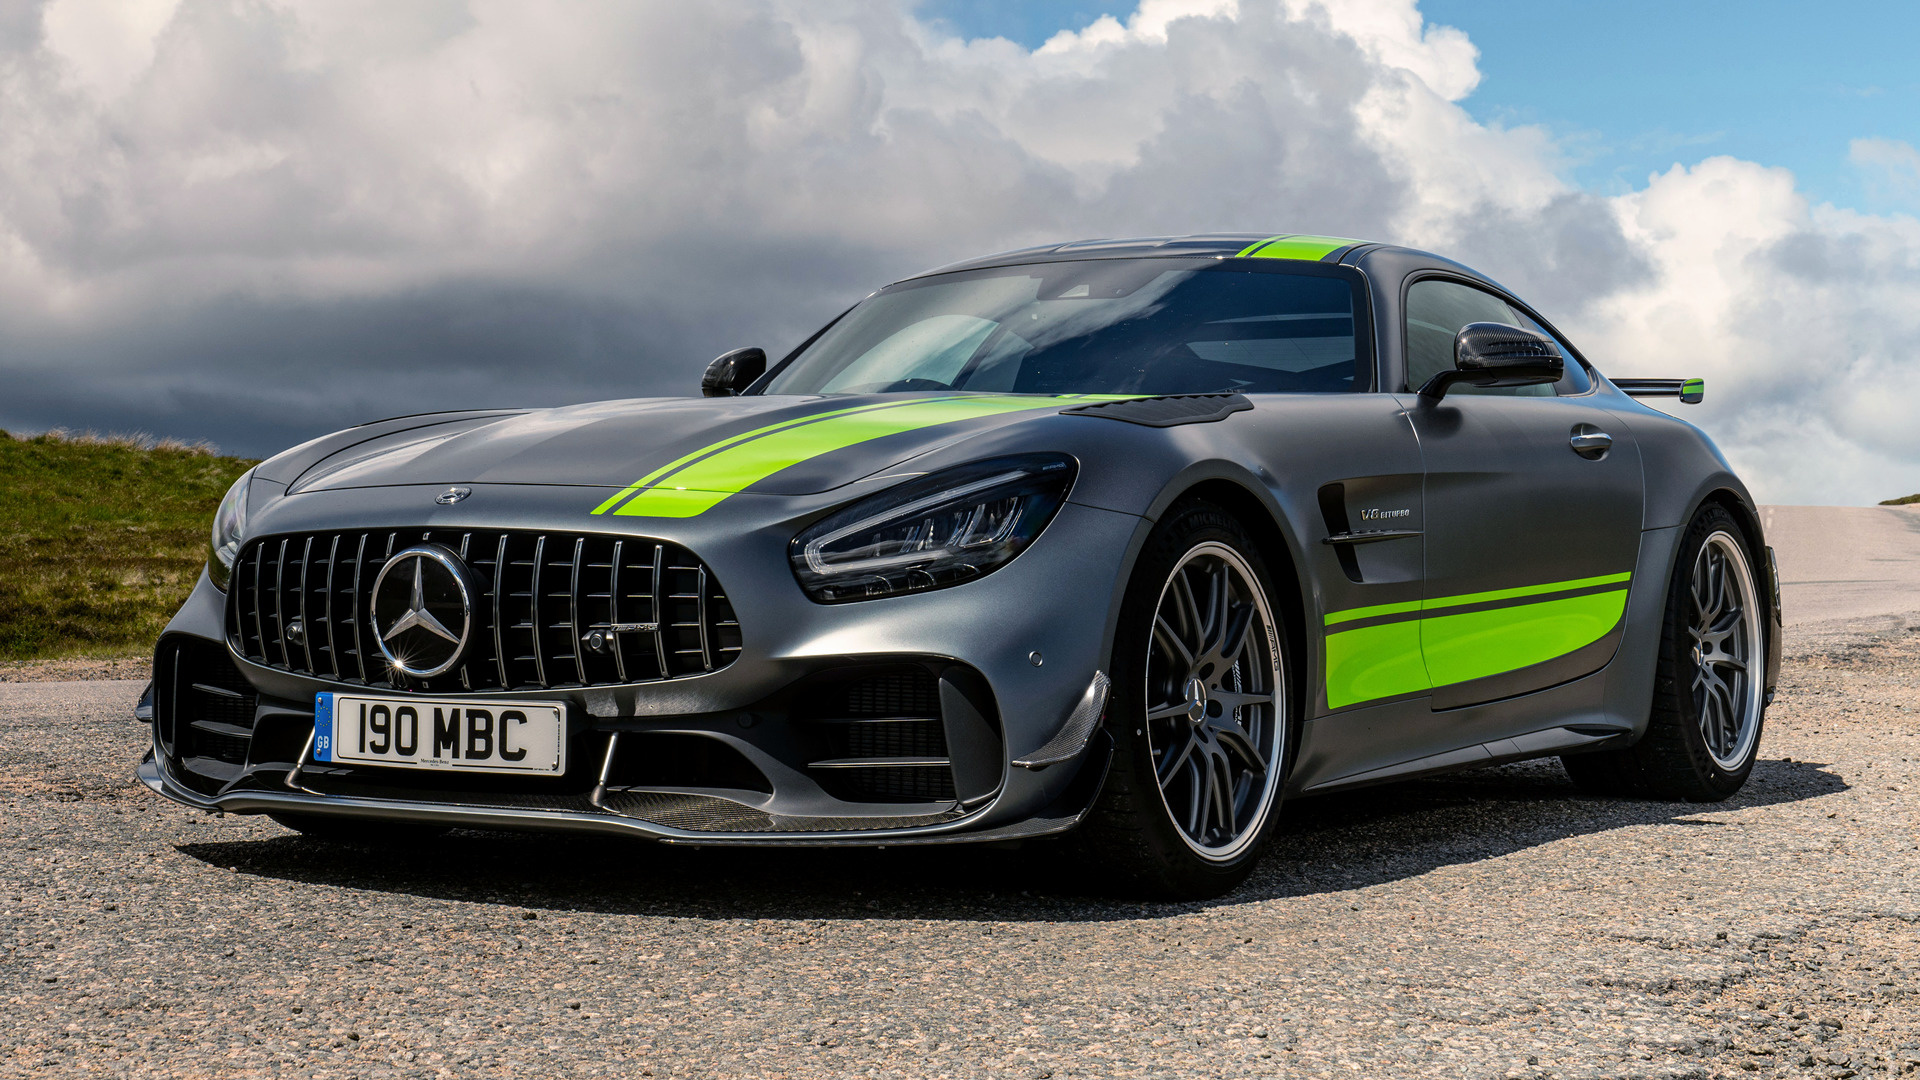 2019 Mercedes-AMG GT R Pro HD Wallpaper | Background Image ...